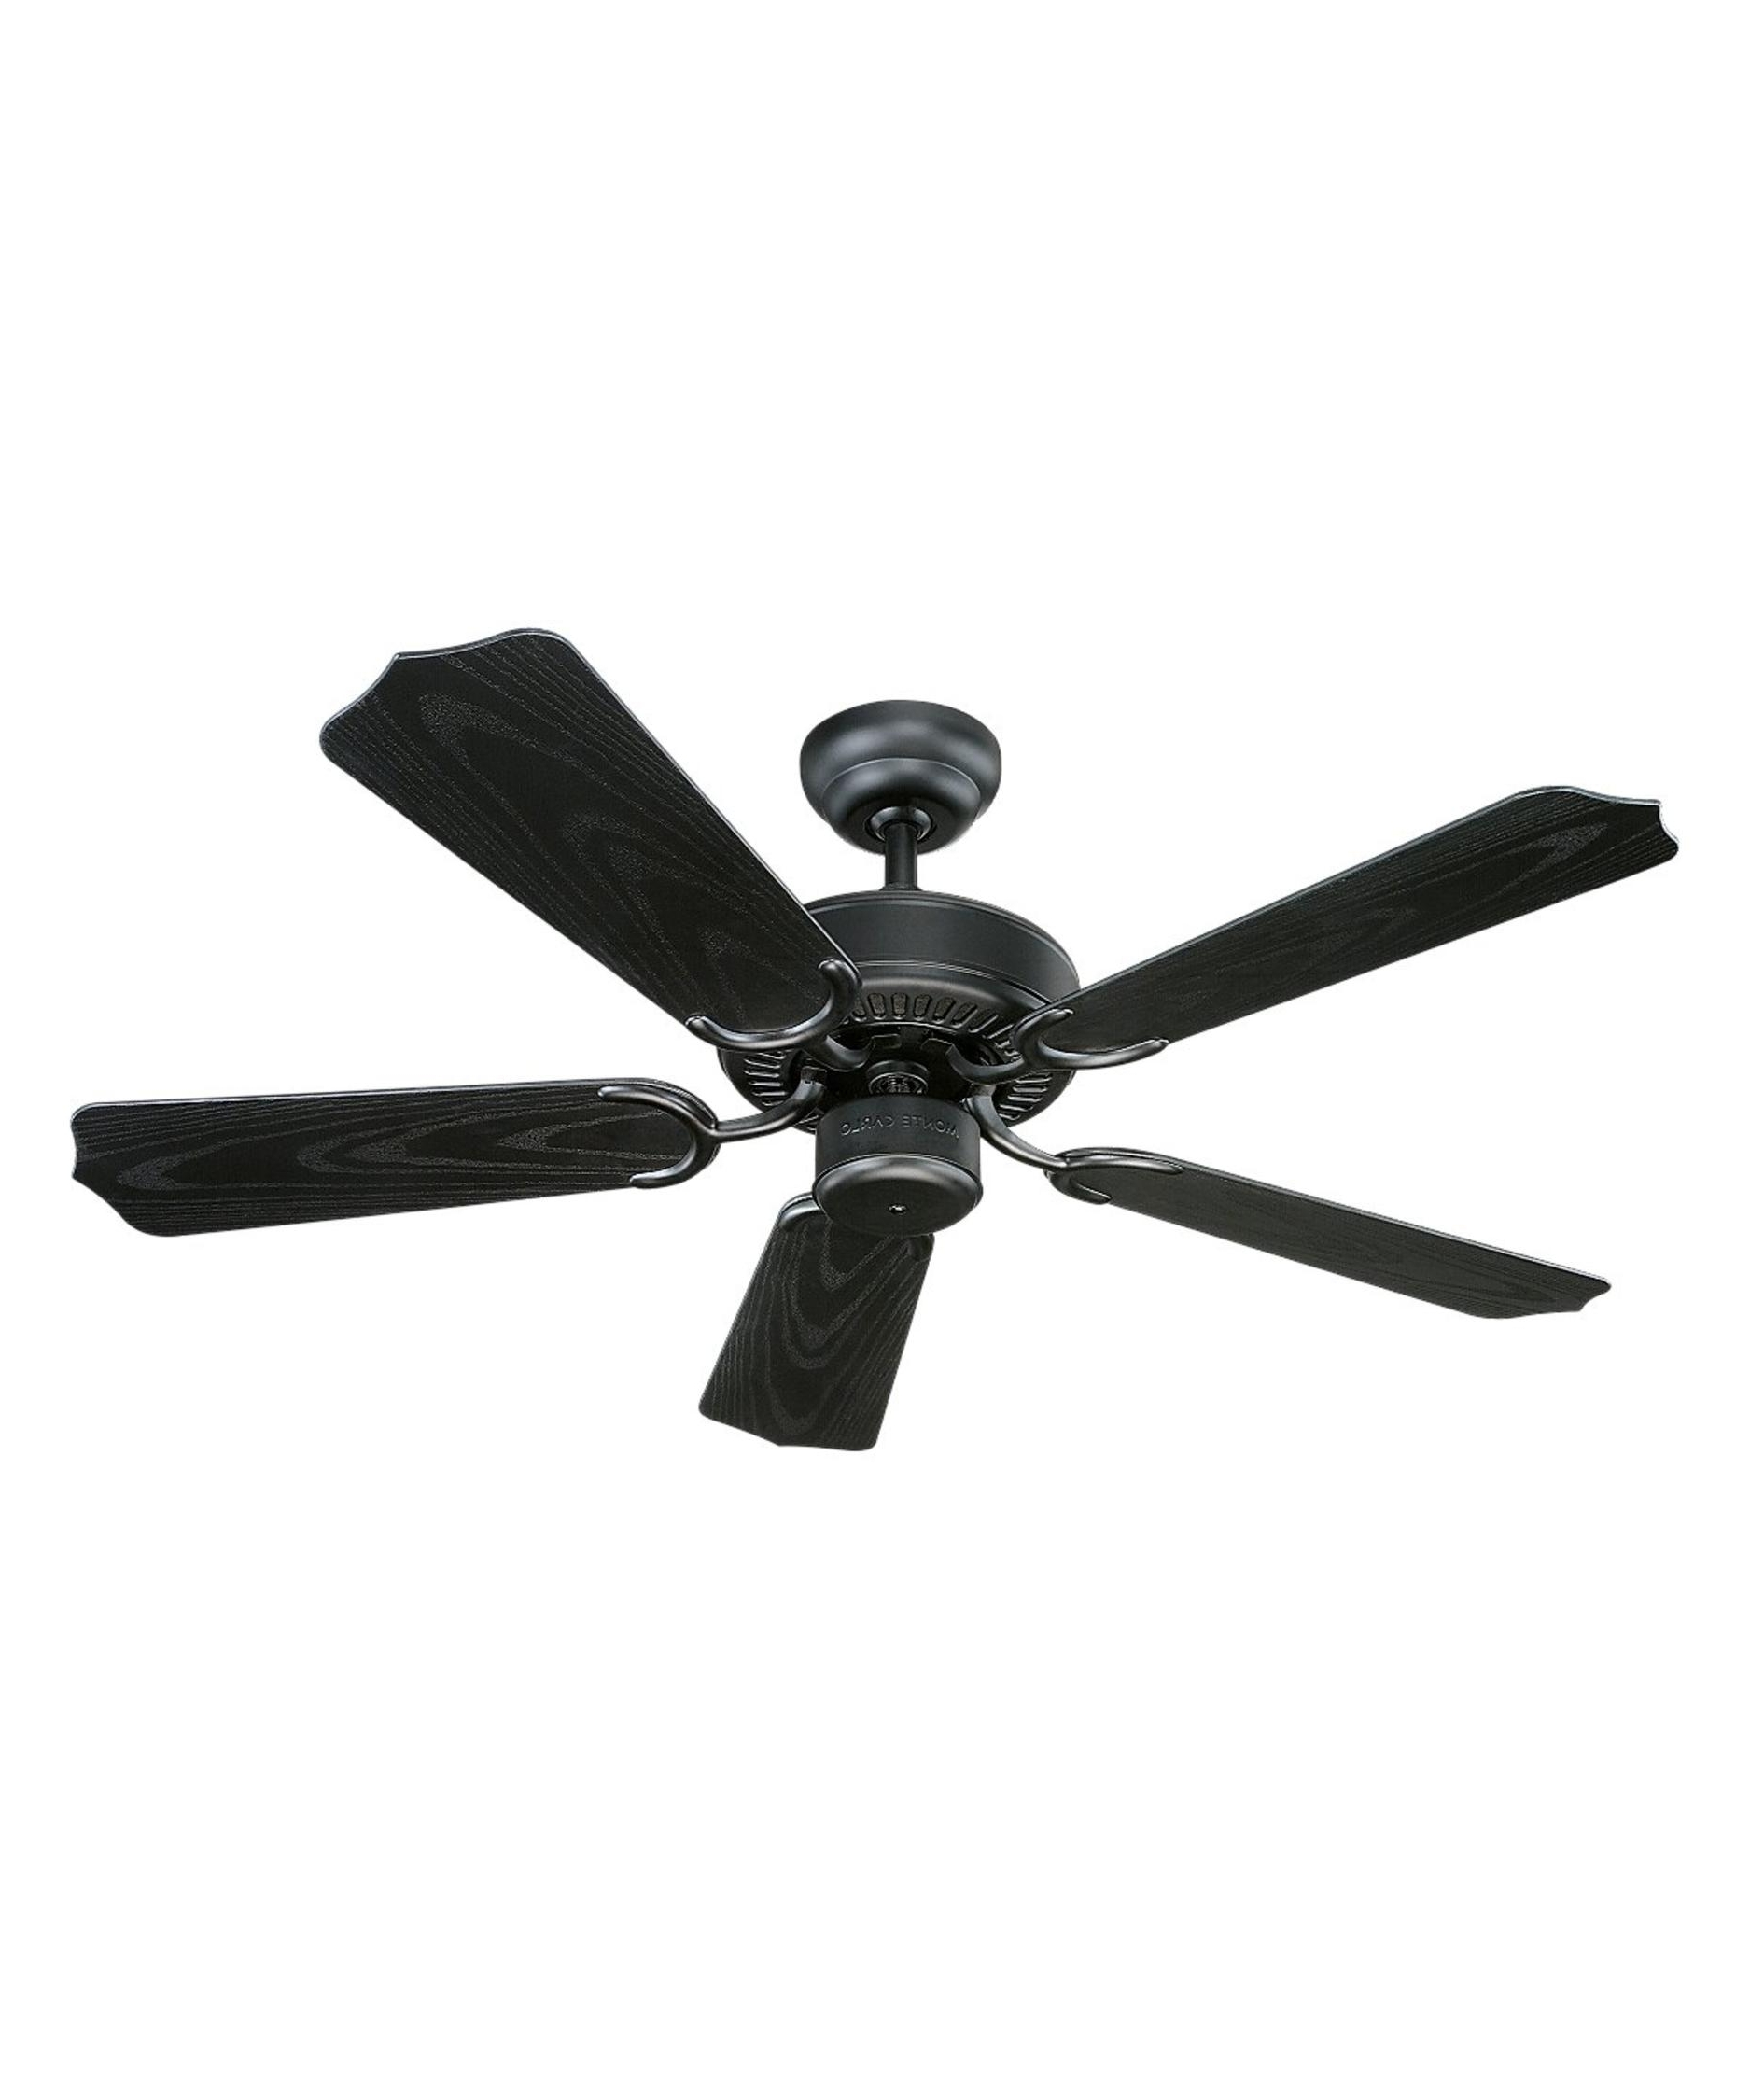 42 Inch Outdoor Ceiling Fans Regarding Recent Monte Carlo 5Wf42 Weatherford Ii 42 Inch 5 Blade Ceiling Fan (View 6 of 20)